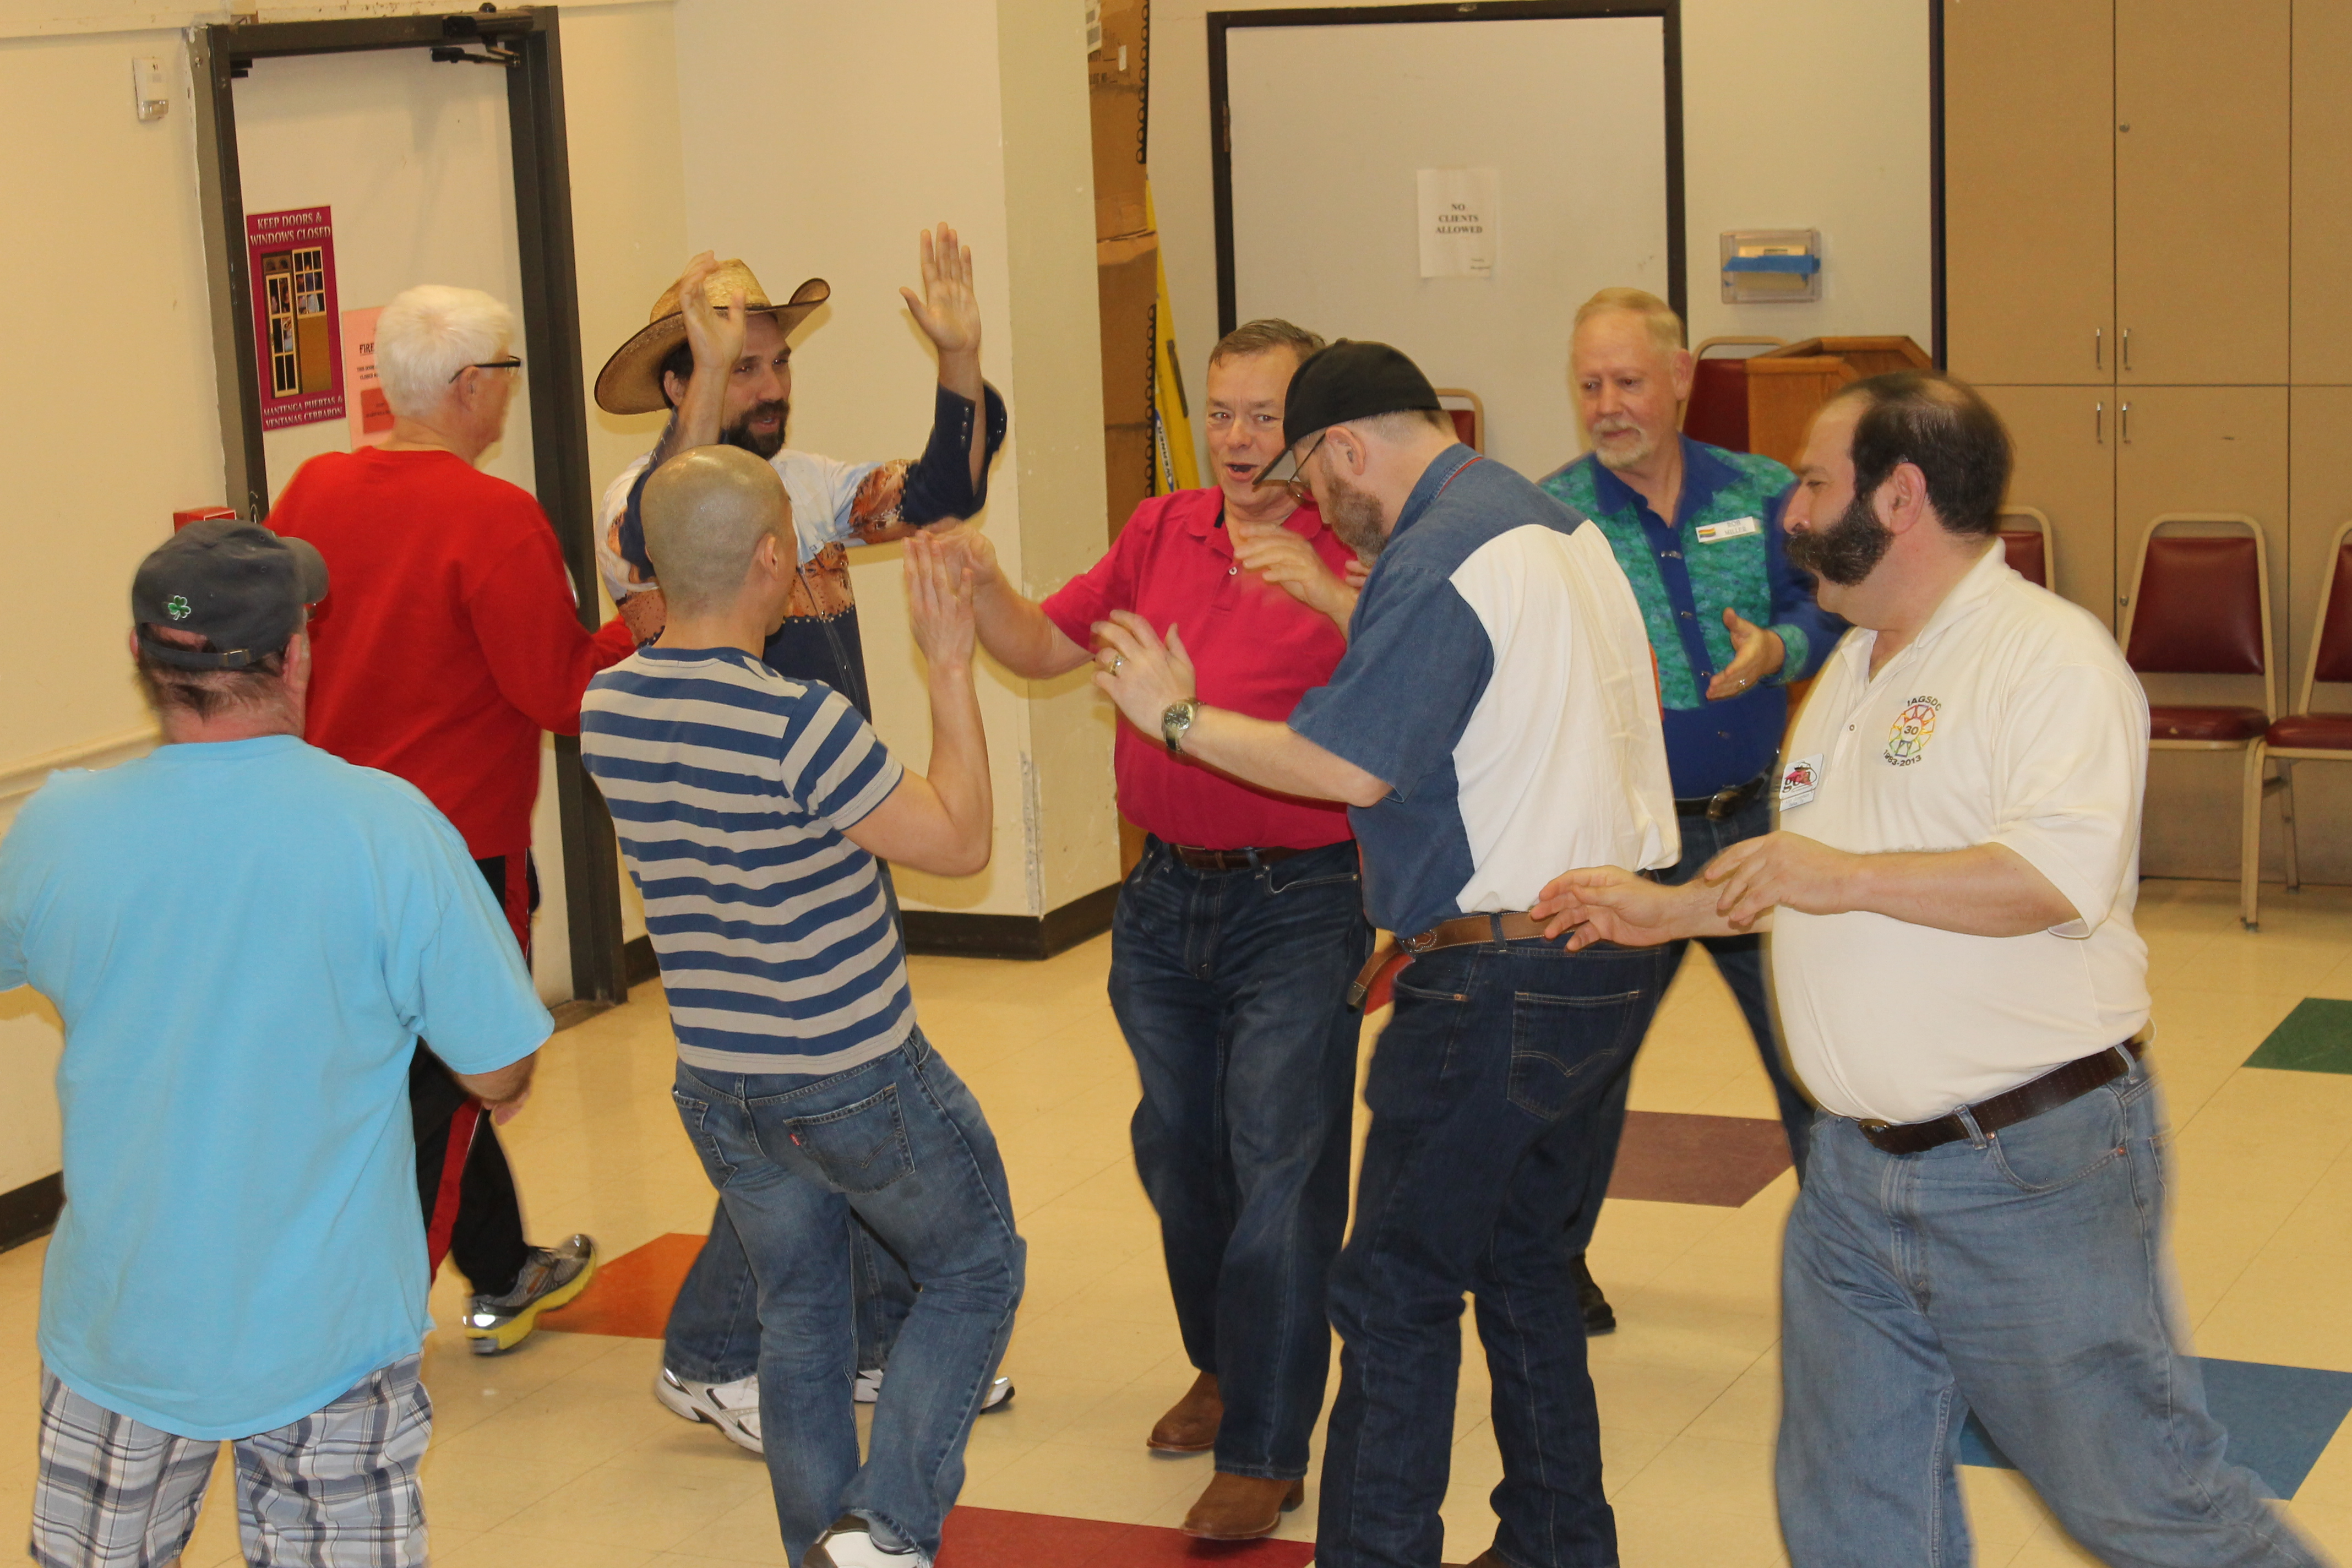 Pegasus Square Dance Club is back after decade dance break